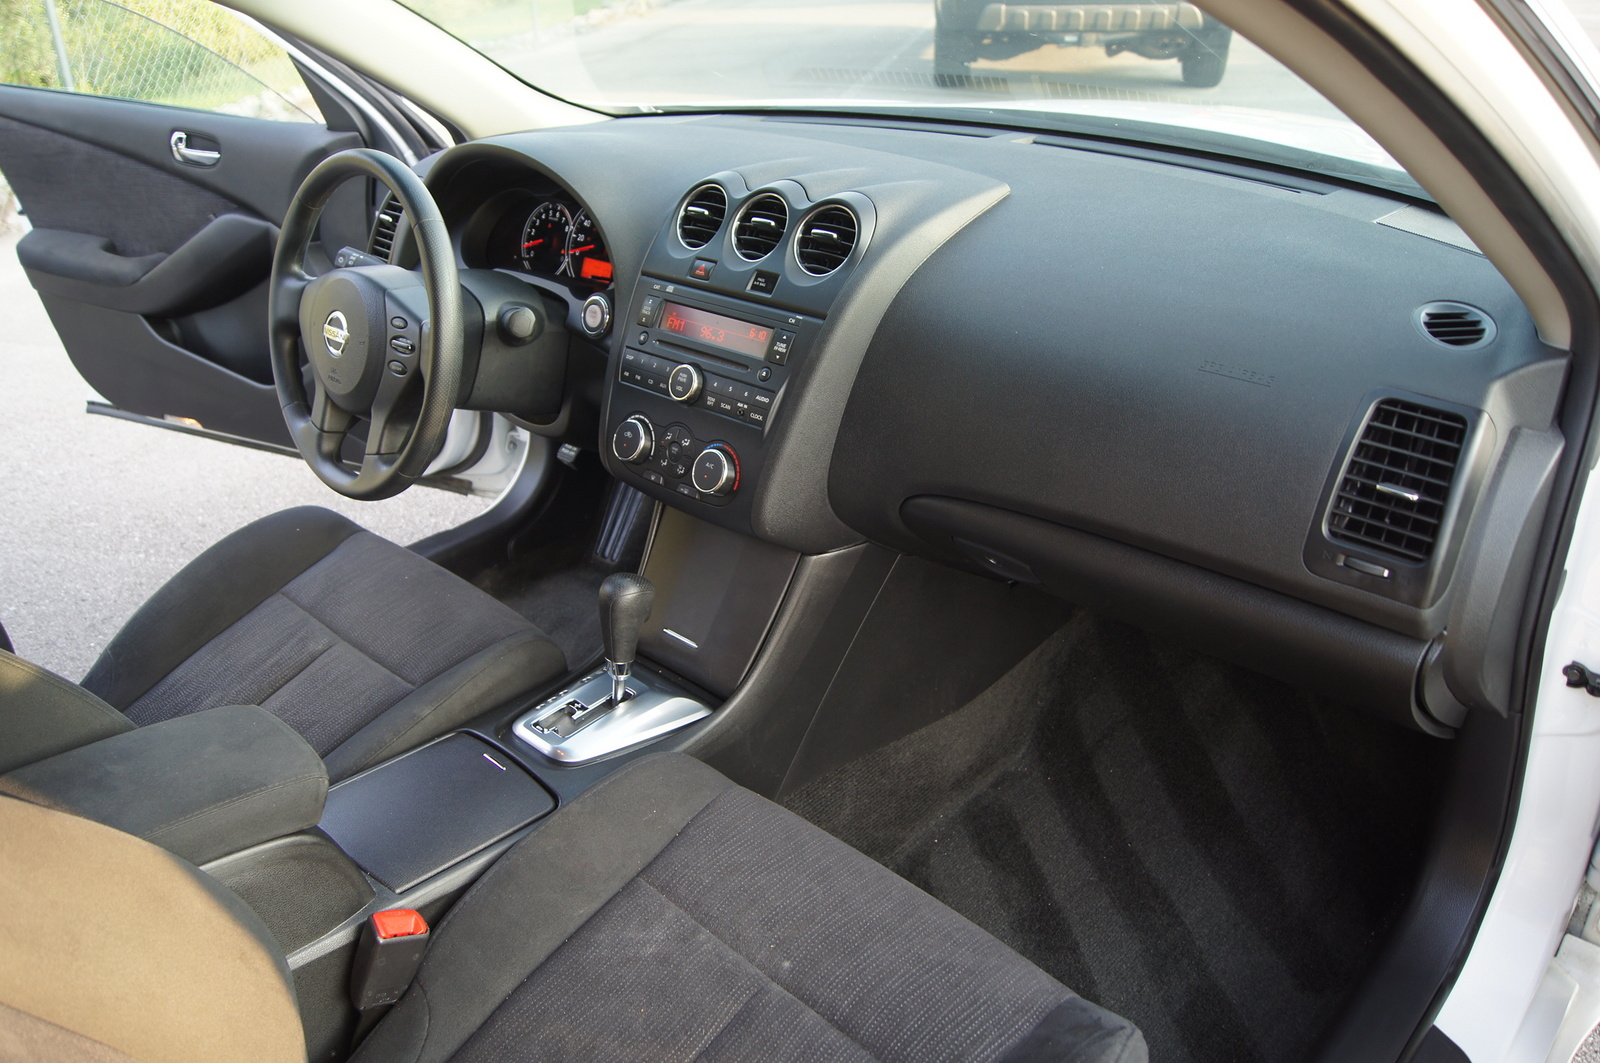 1997 nissan maxima accessories with 2012 Nissan Altima Pictures C22935 Pi36359028 on 2006 Z4 roadster likewise 2012 Nissan Altima Pictures C22935 pi36359028 likewise Altima additionally 2137703633689504203 besides 2012 Tiguan.